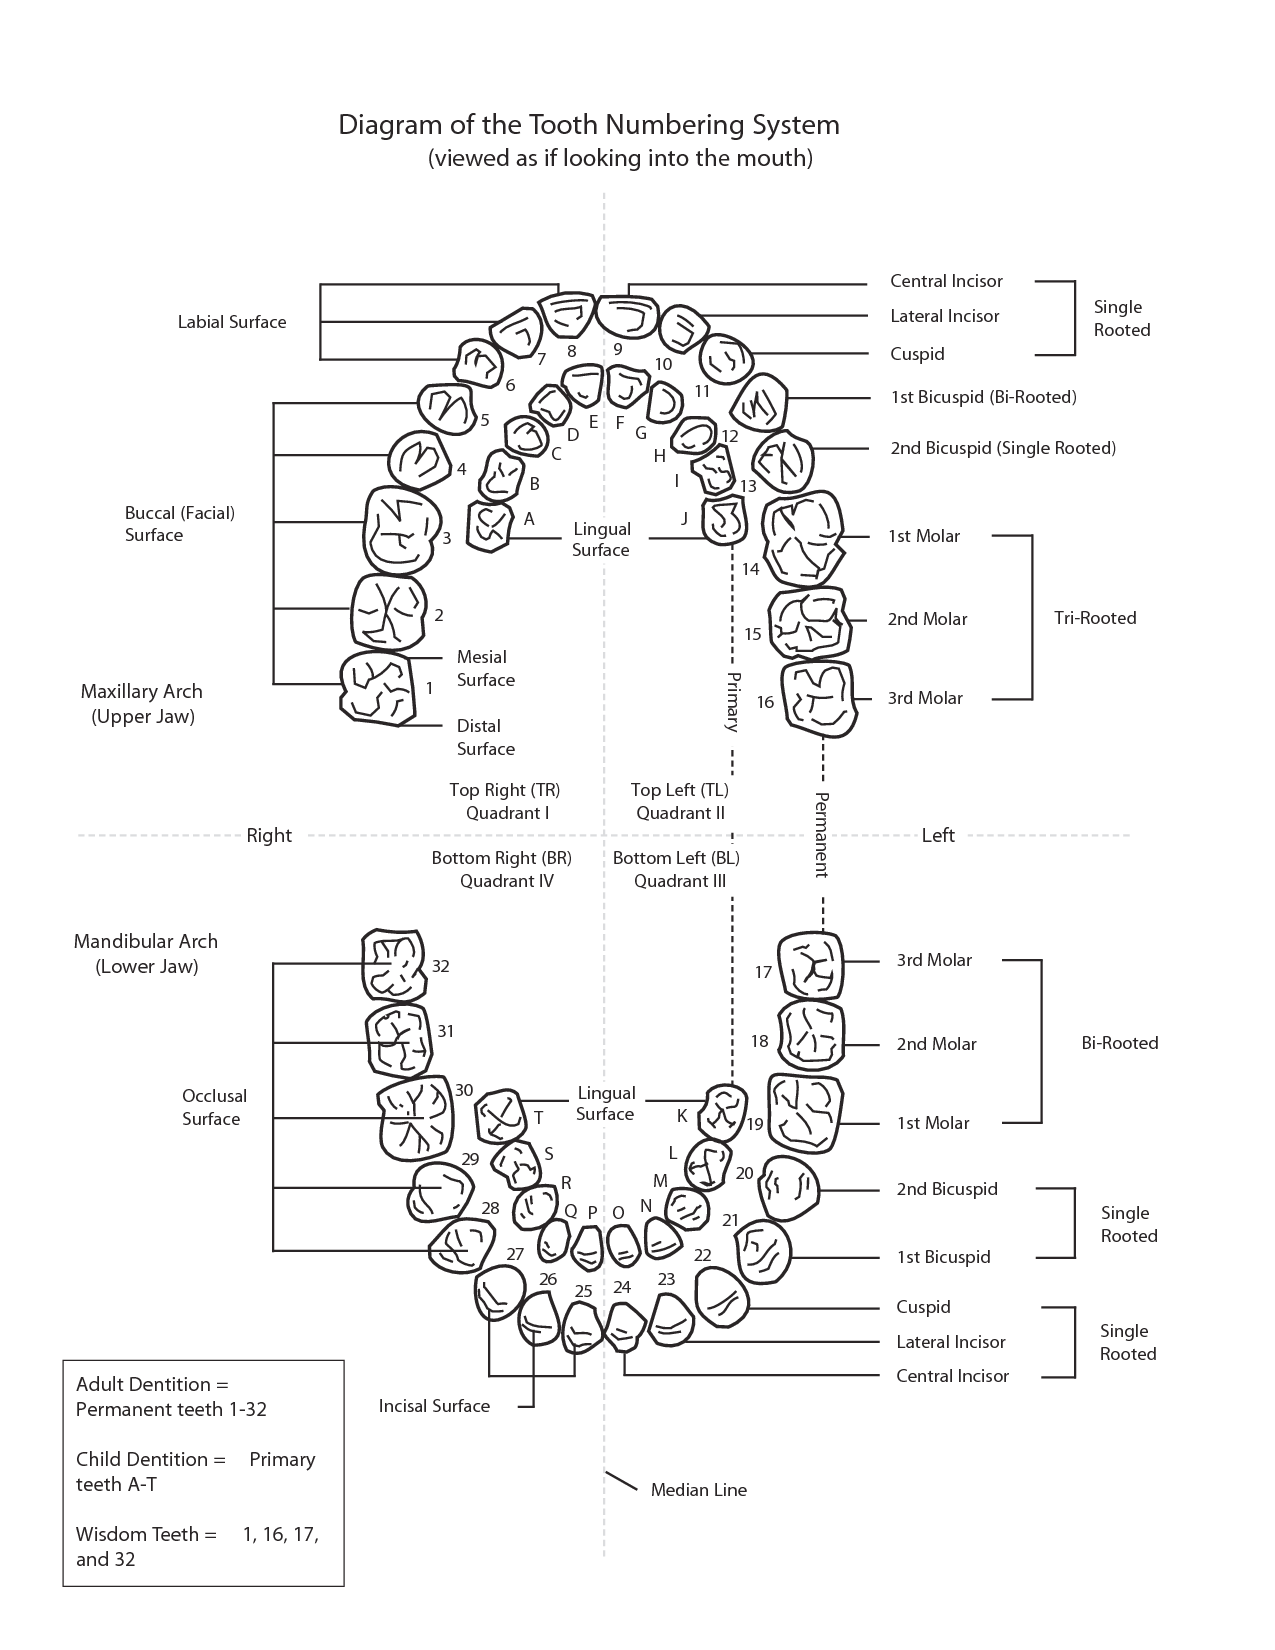 Teeth Diagram Labeled Wiring For Led Lights Of The Tooth Numbering System Homeschool